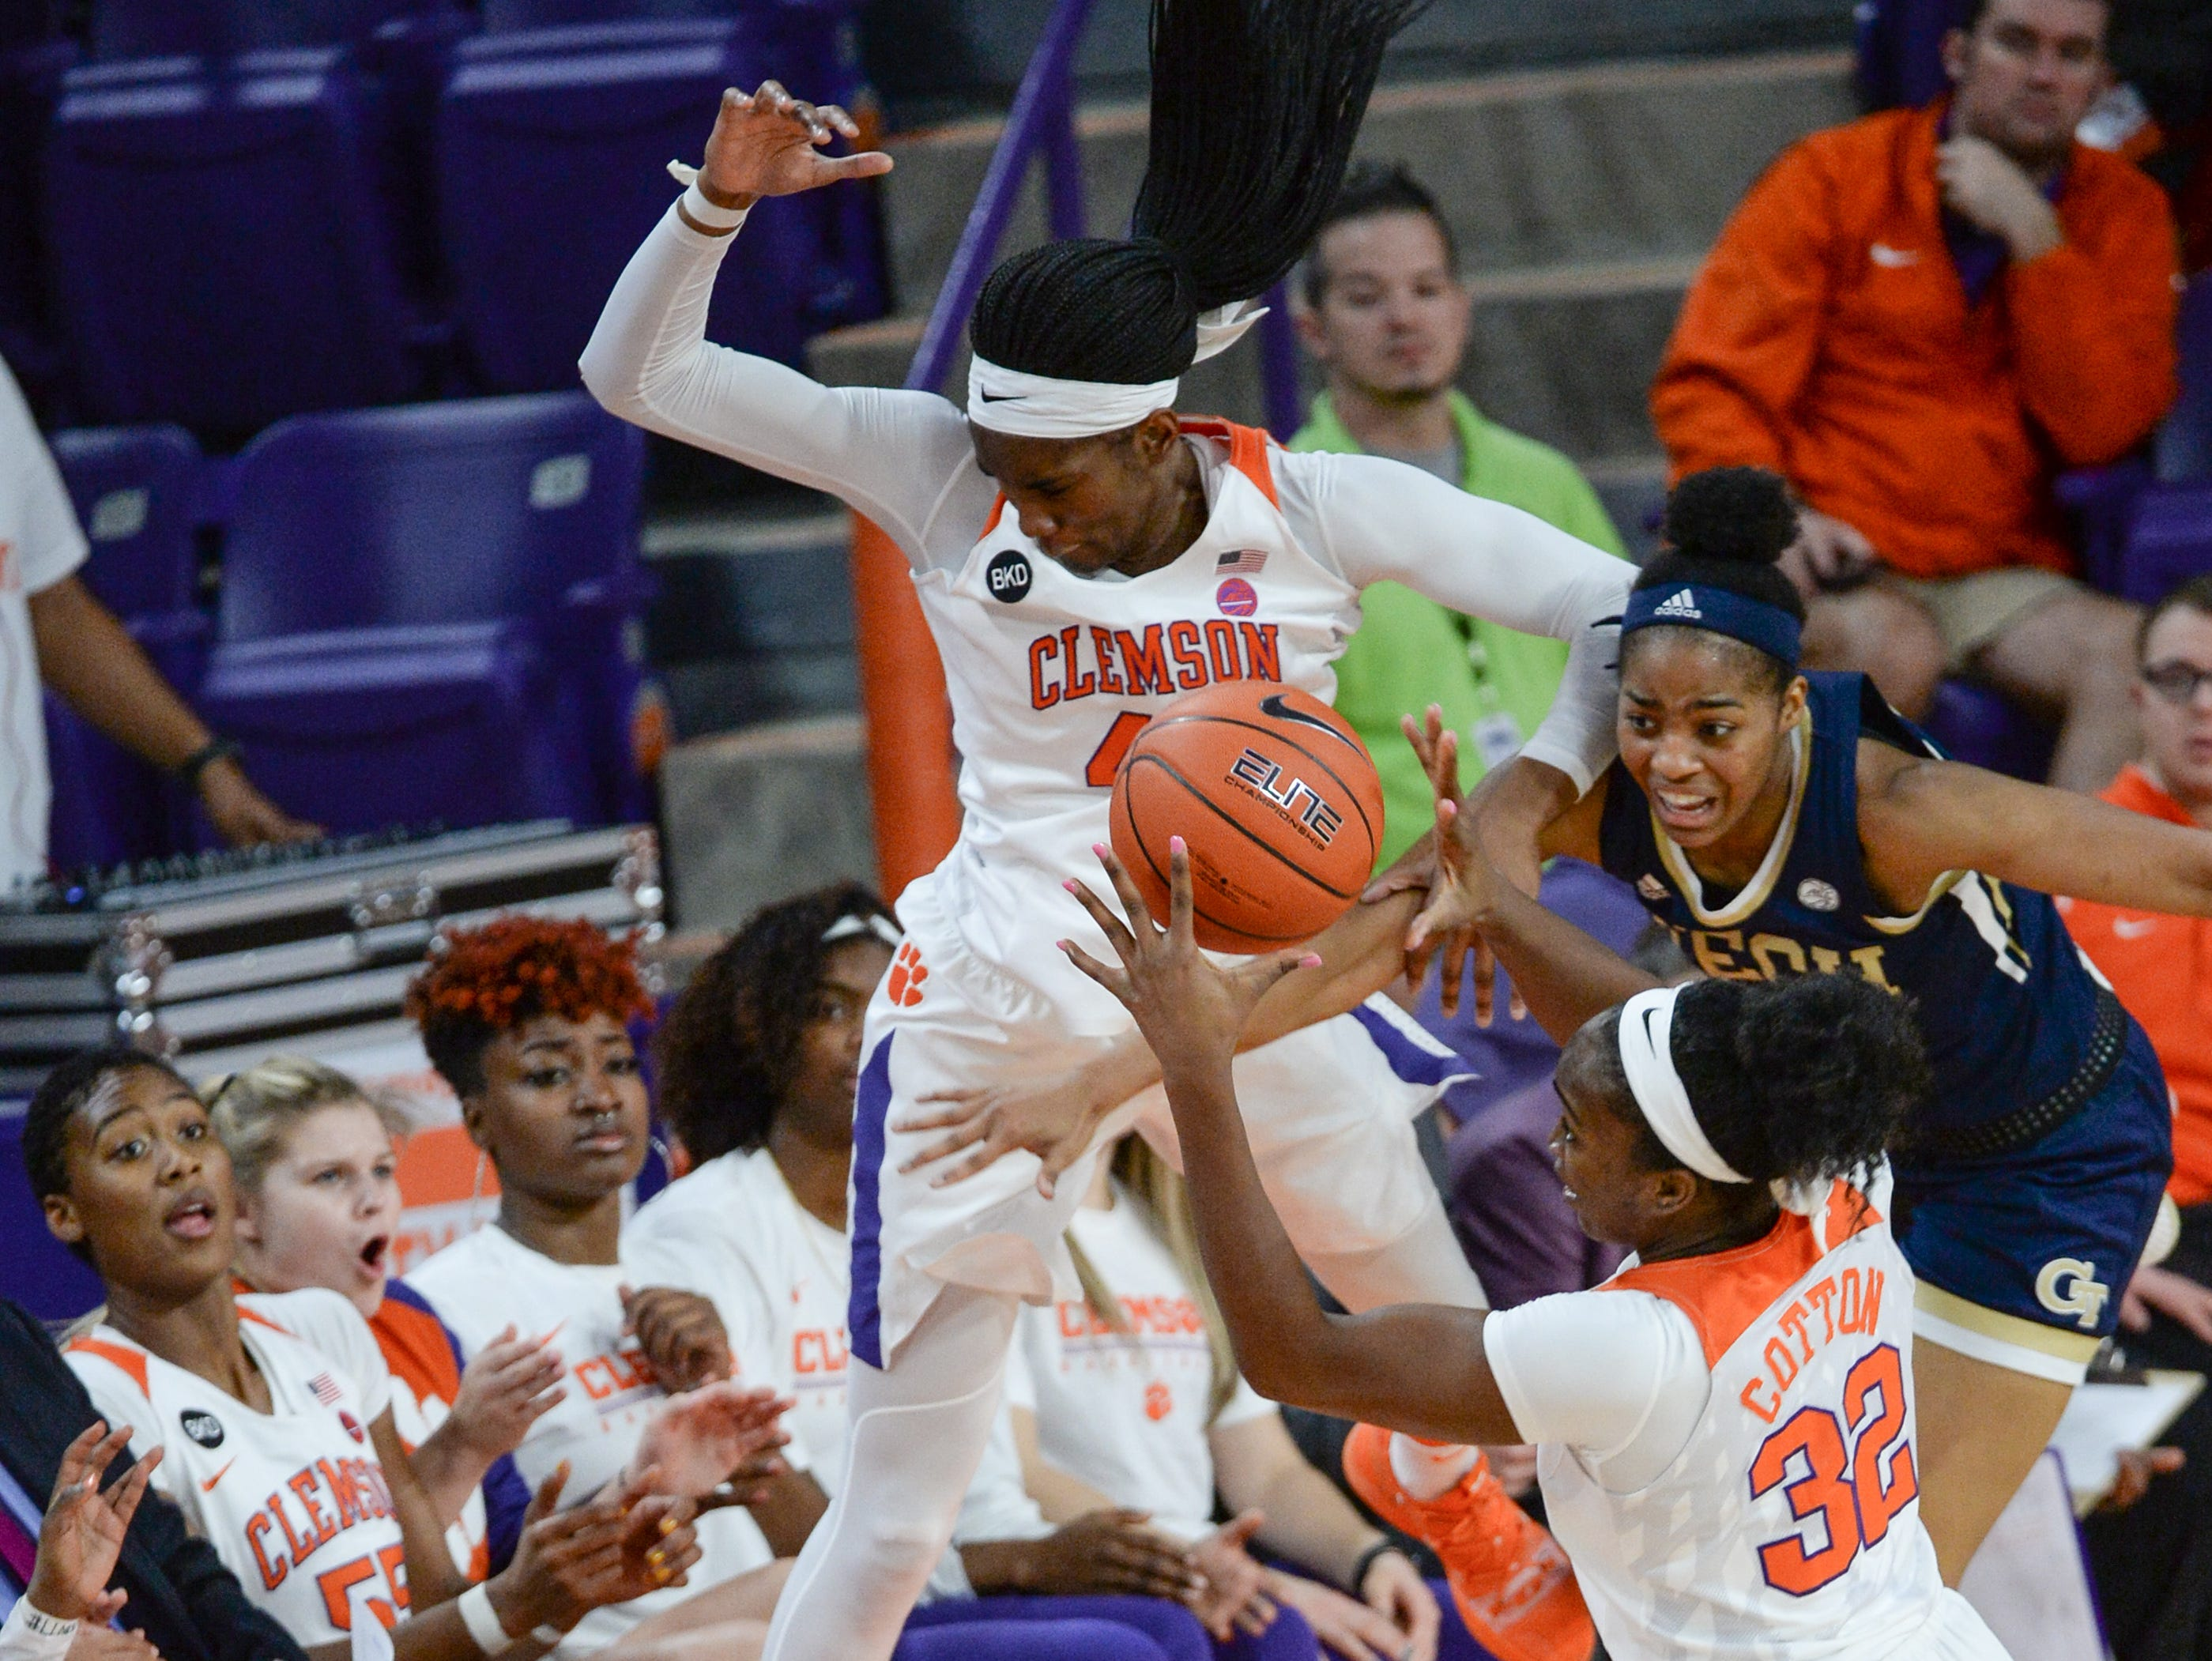 Clemson center Kobi Thornton(44) saved a ball, passing to teammate Clemson guard Chyna Cotton(32) near Georgia Tech guard Liz Balogun(5) during the first quarter at Littlejohn Coliseum in Clemson Thursday, January 17, 2019.